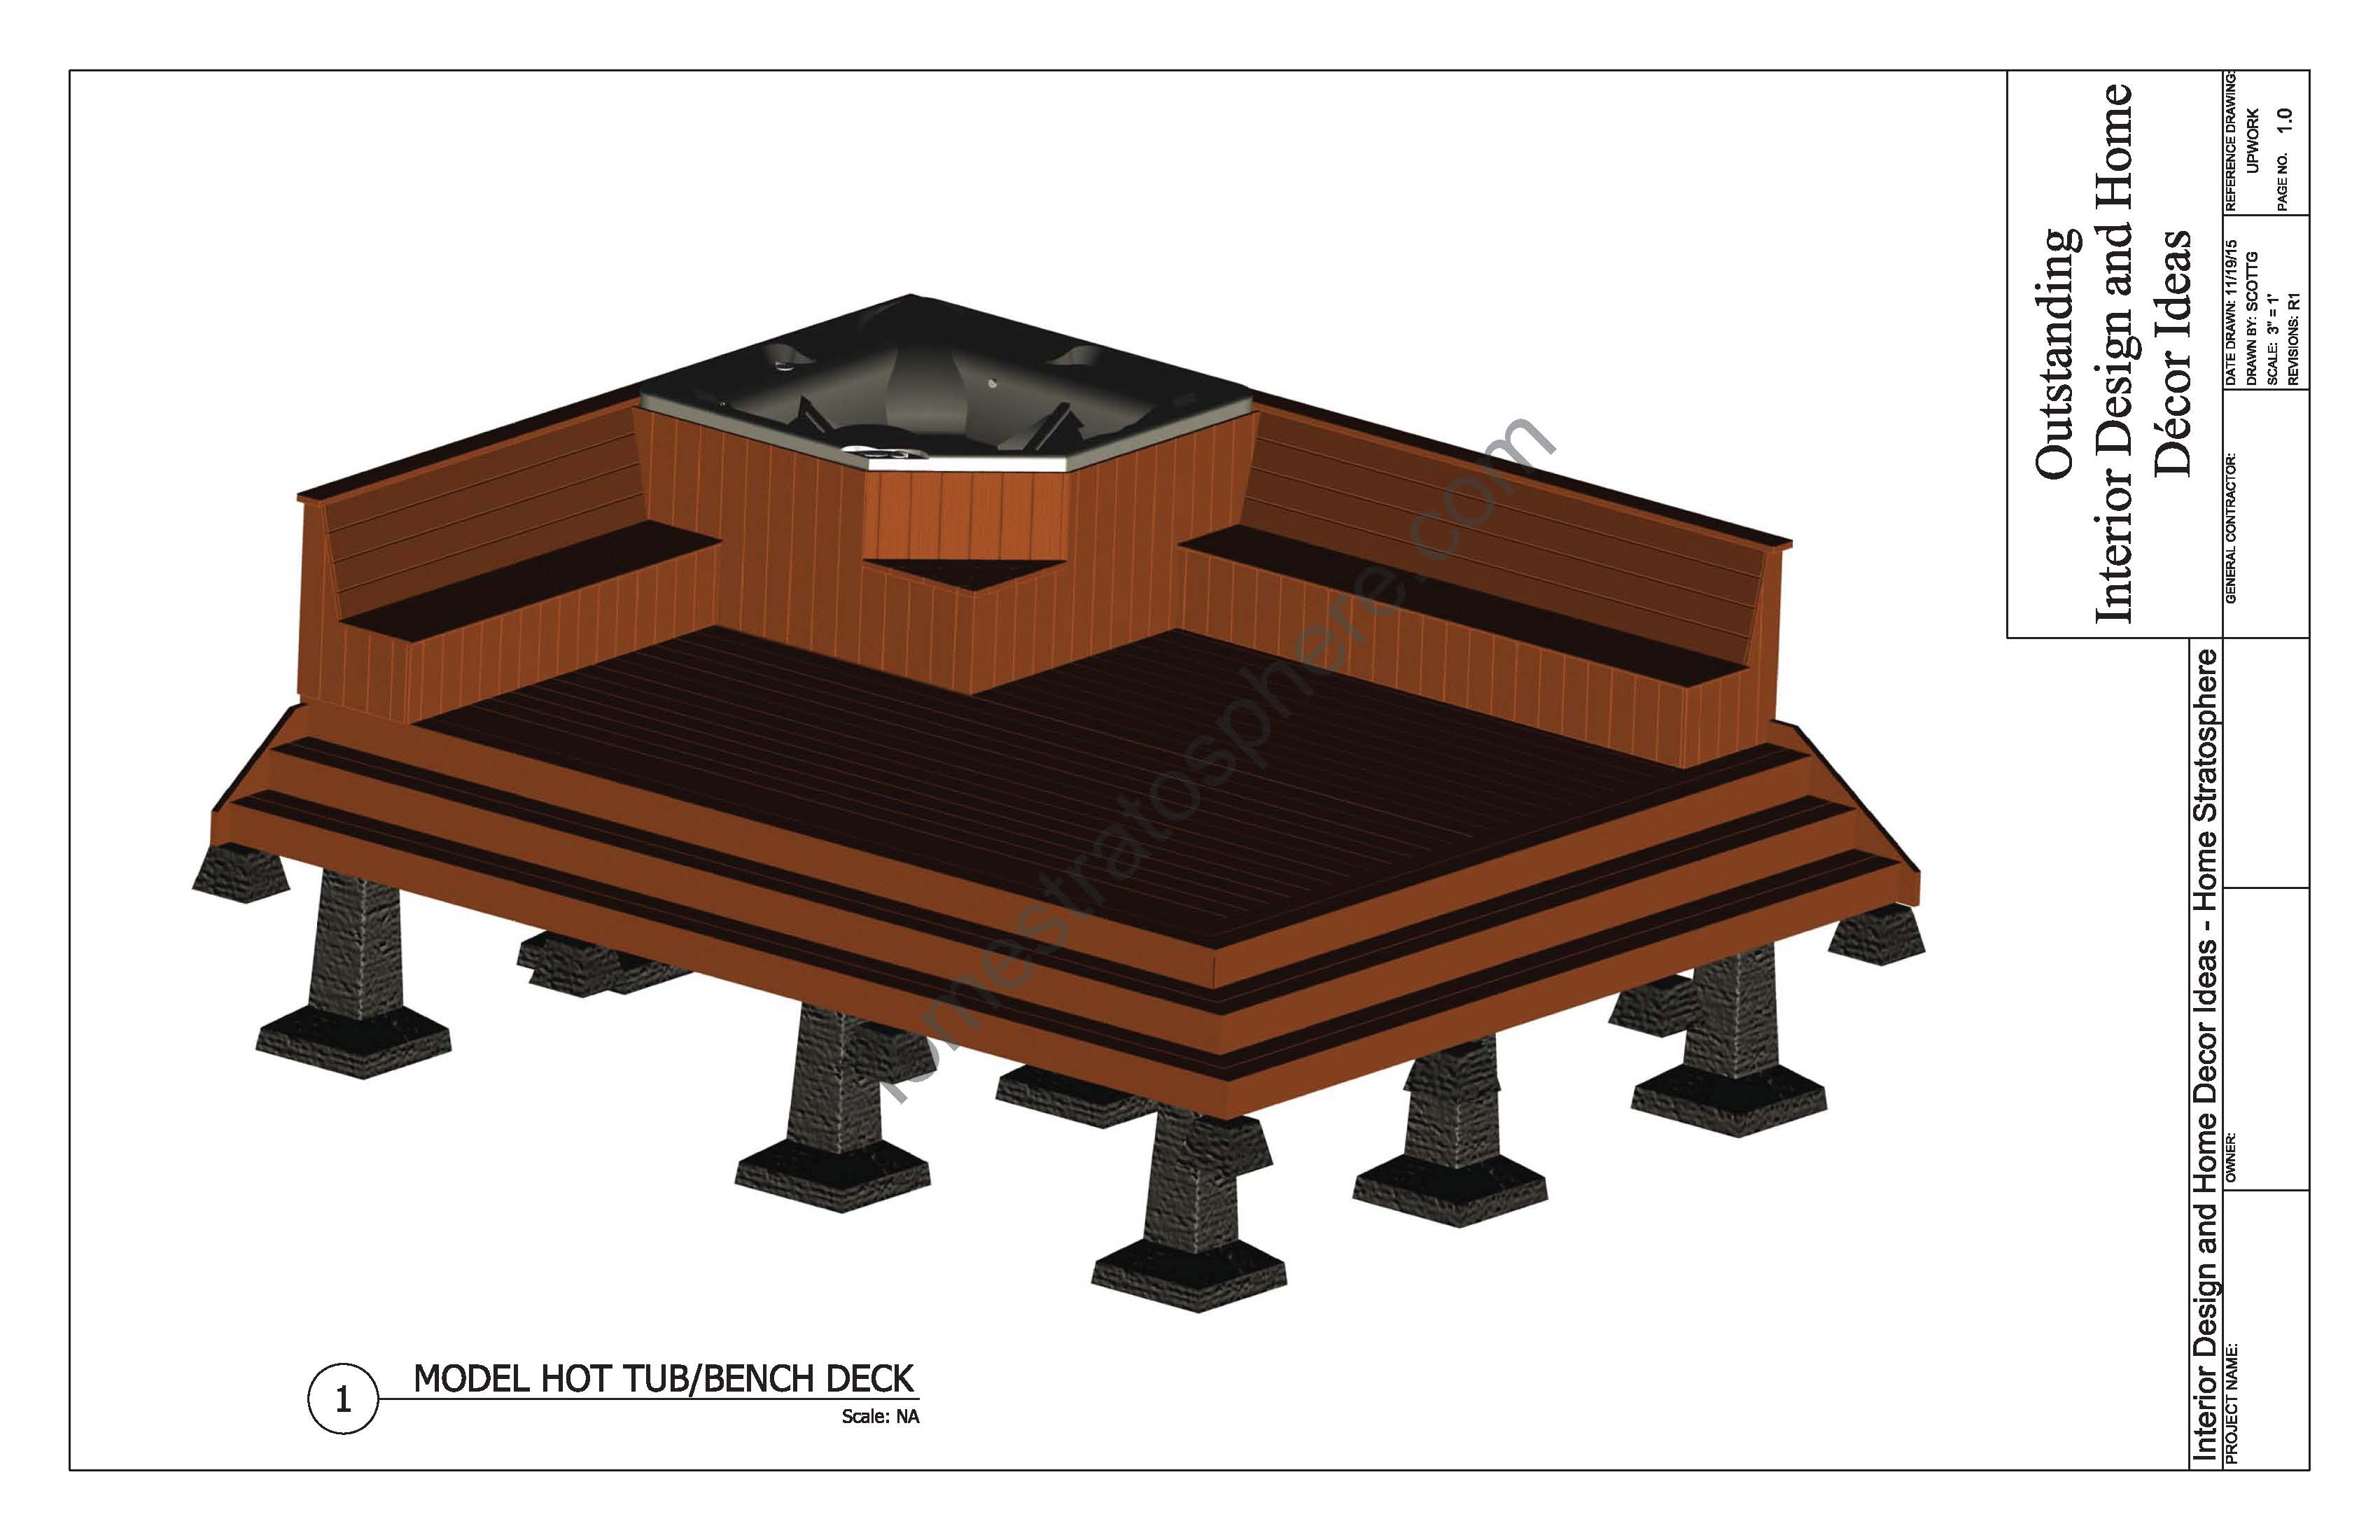 Hot tub deck design plan free pdf download for Free online deck design